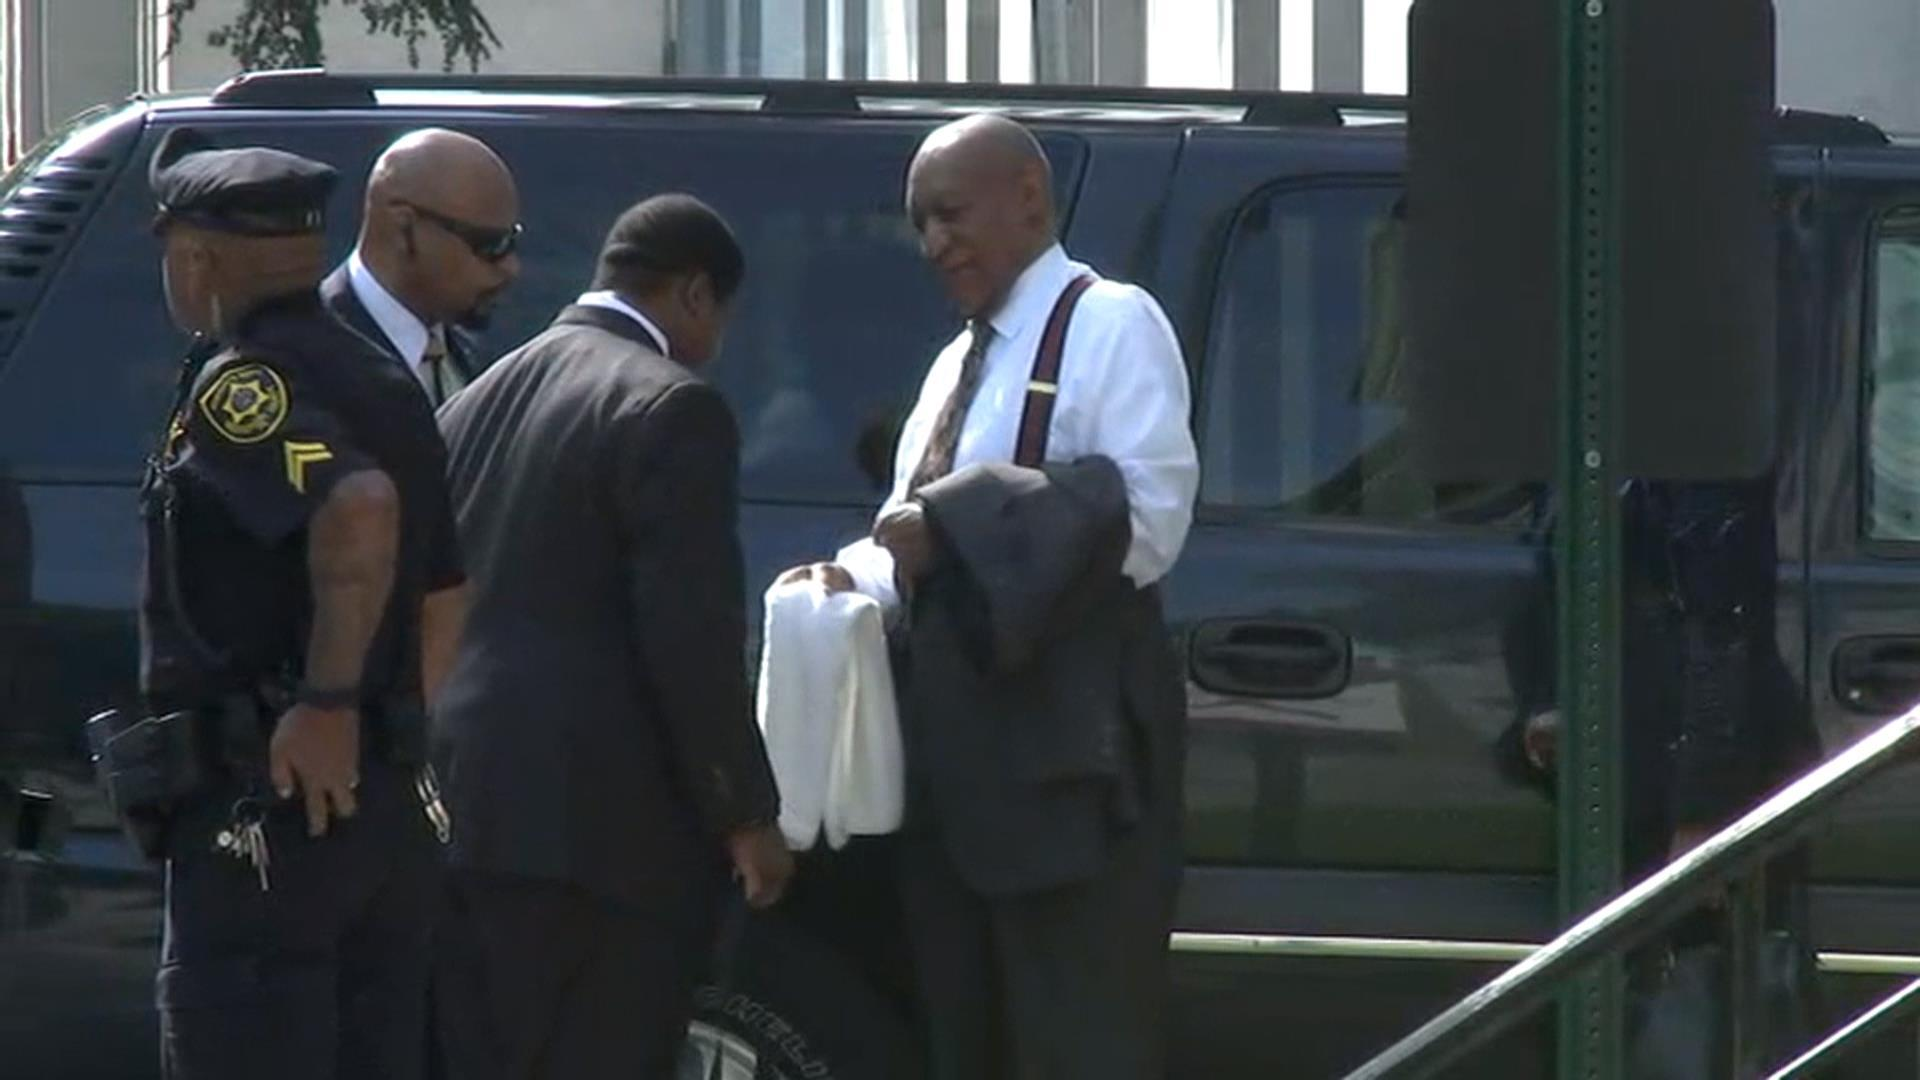 See Bill Cosby Arrive at Court to Face Assault Charges